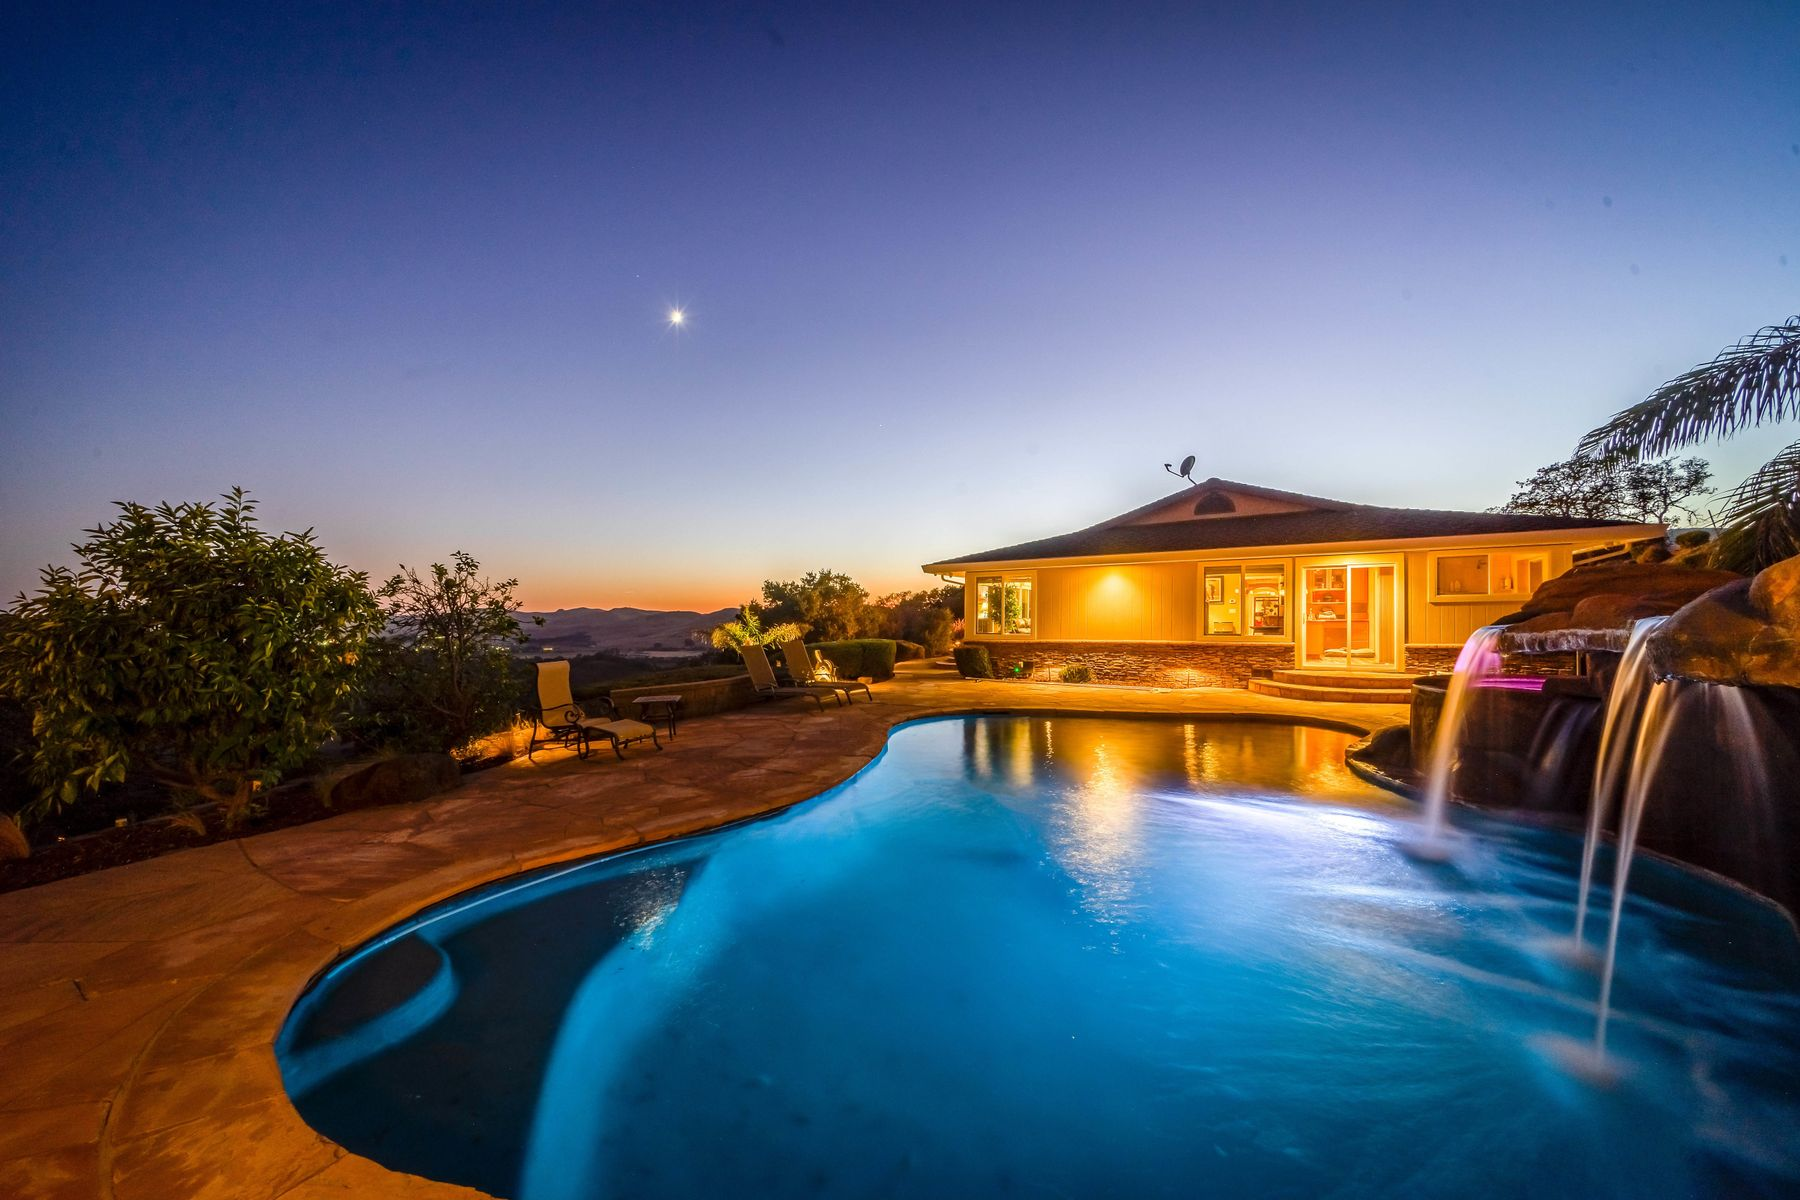 Single Family Homes for Sale at Panoramic Views Above Fairfield 4390 Emerald Ridge Ln Fairfield, California 94534 United States